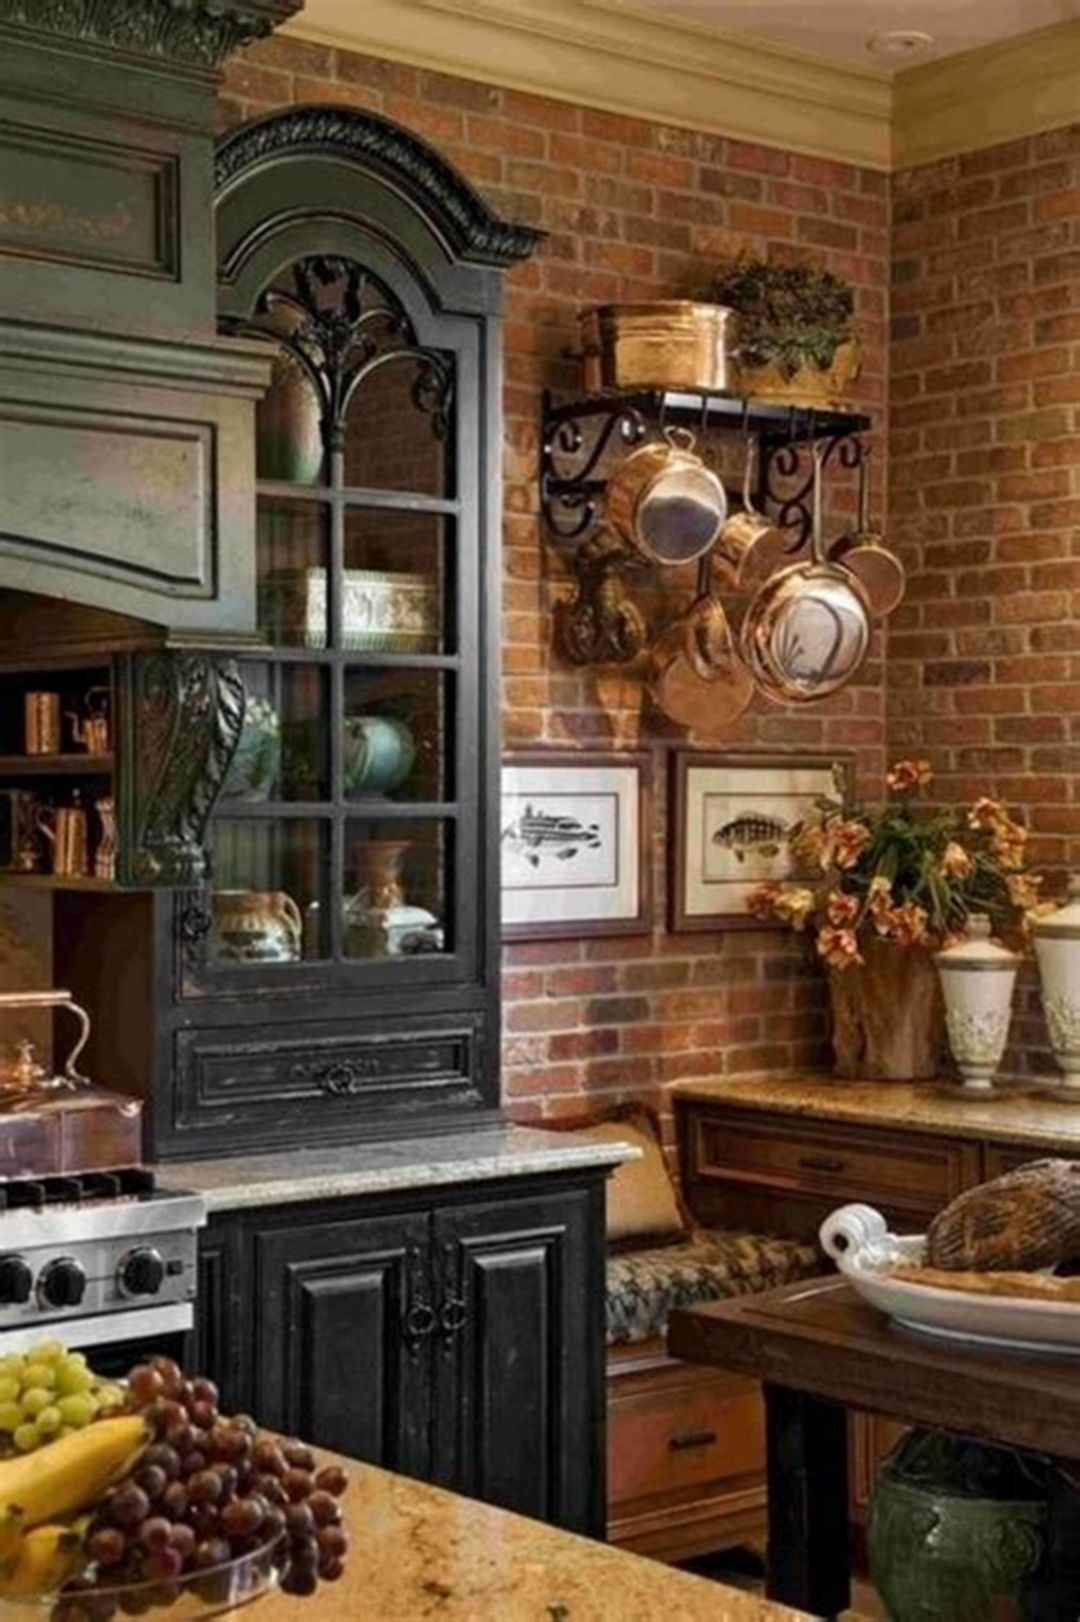 Best 5 Awesome Antique Kitchen Decorating Ideas in 5  Country